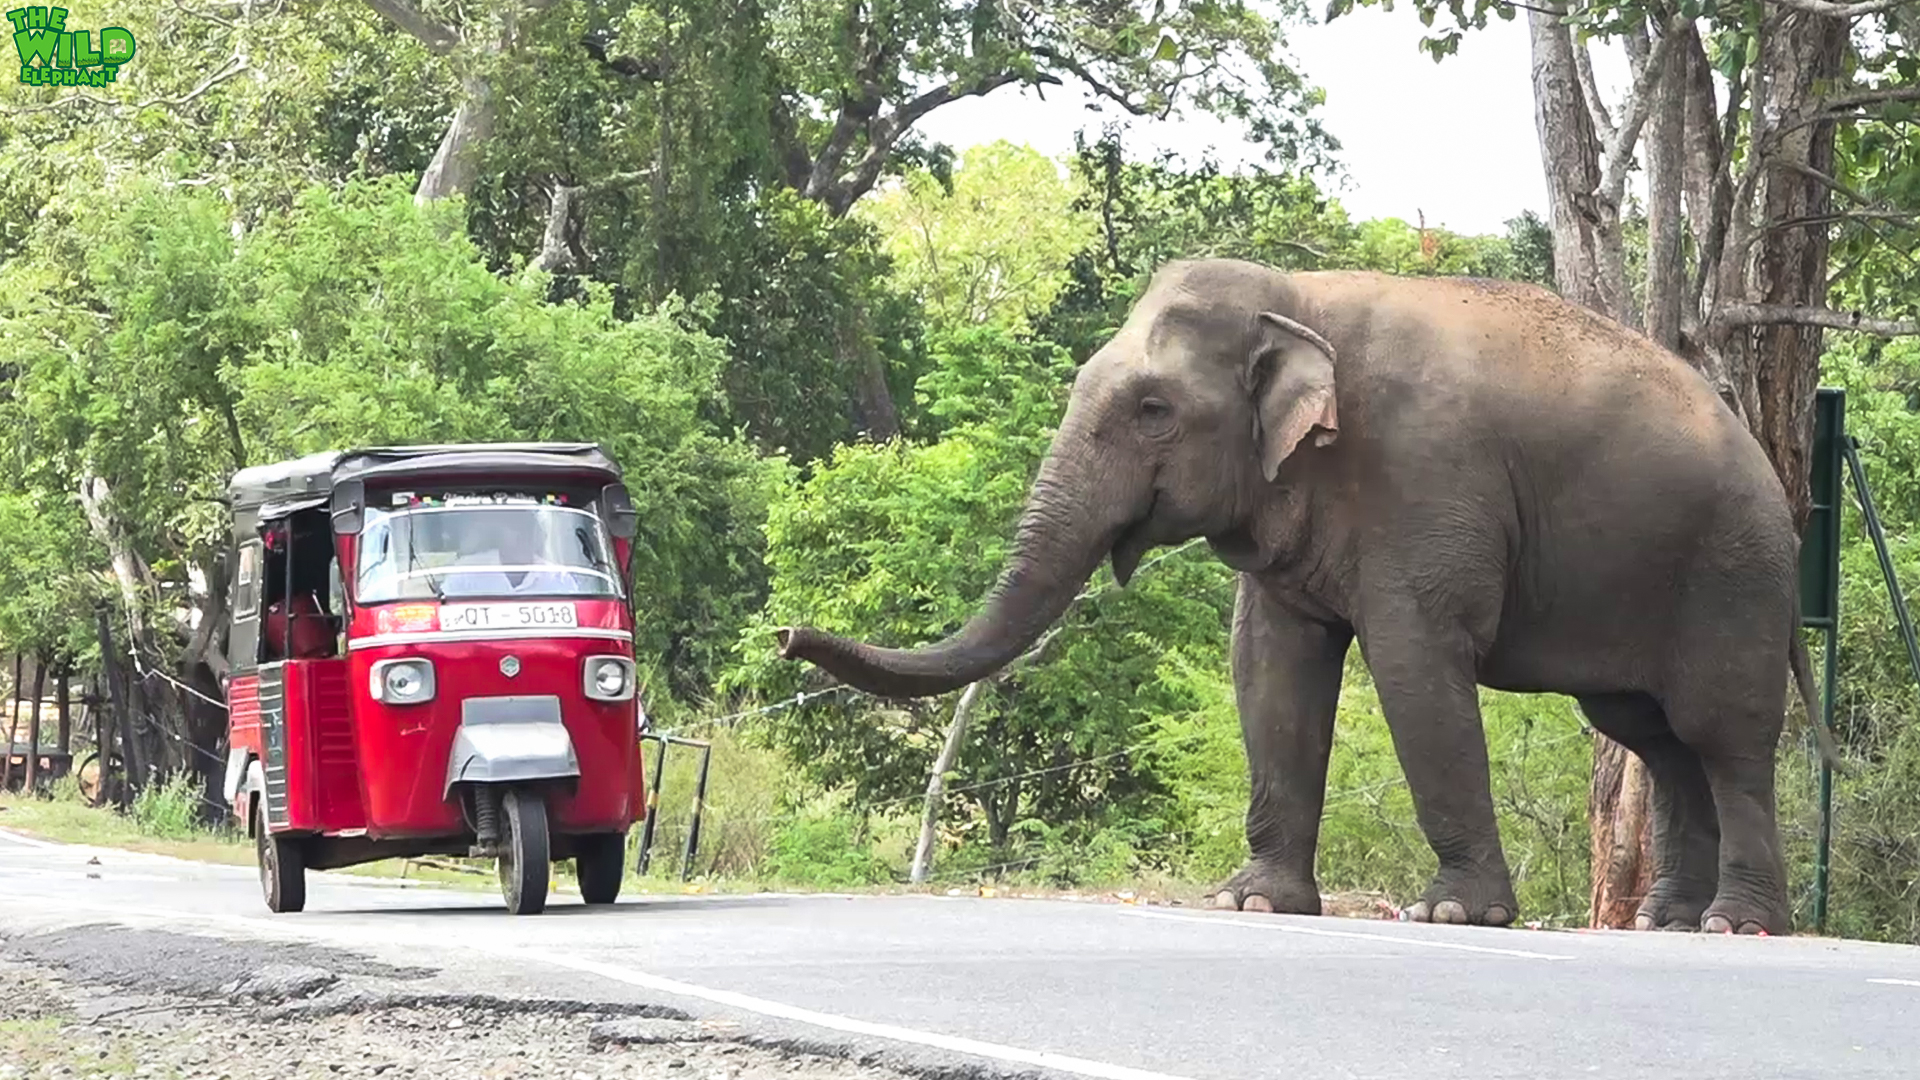 Behemoth of an elephant waits by the village demanding food - Wild